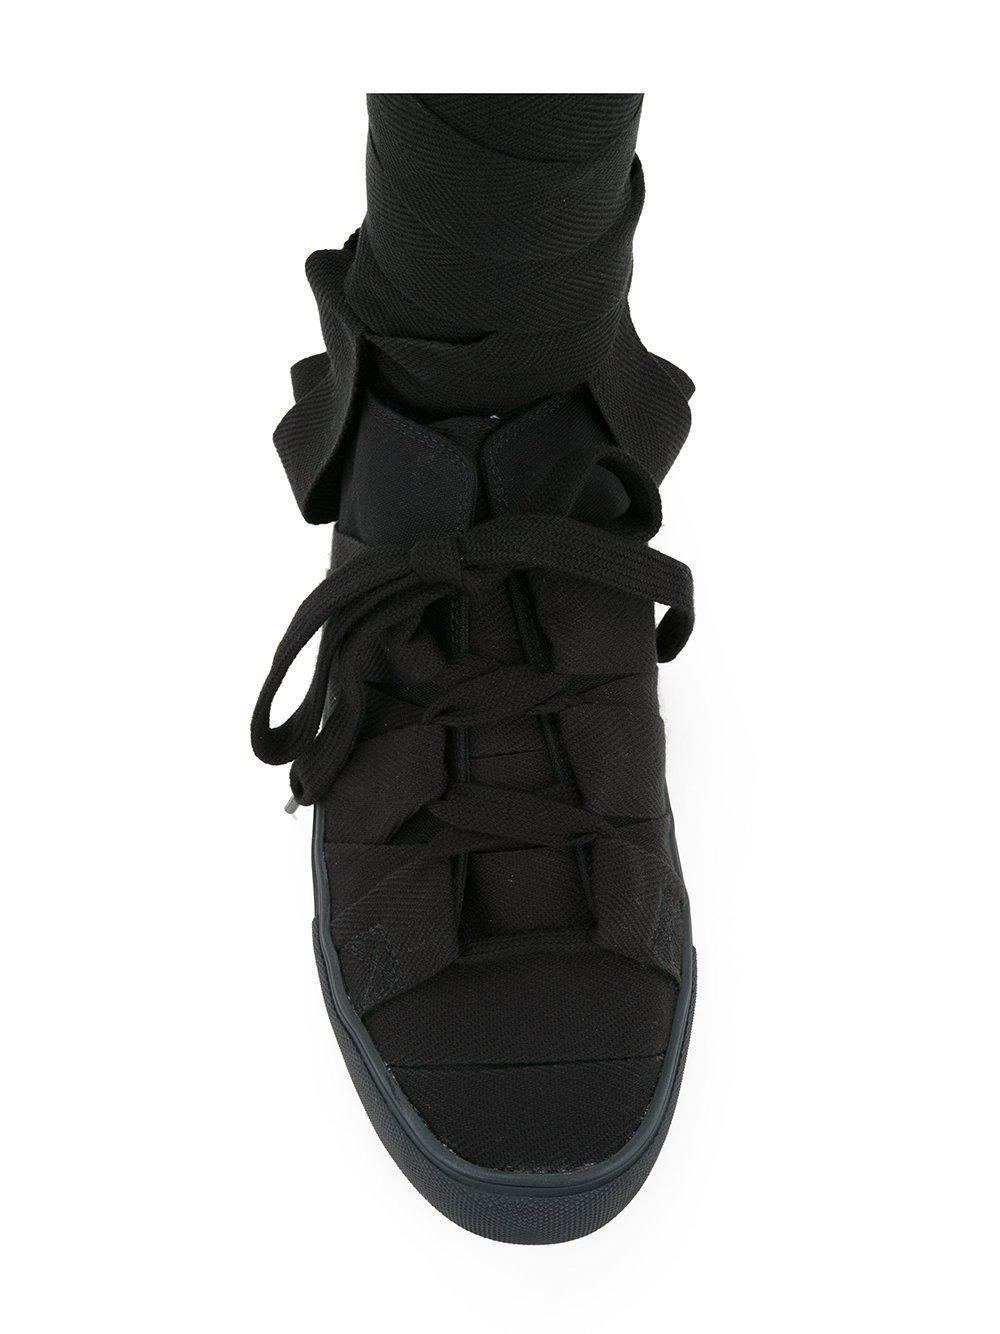 d687934e101 Lyst - Yohji Yamamoto Tape Sneakers in Black for Men